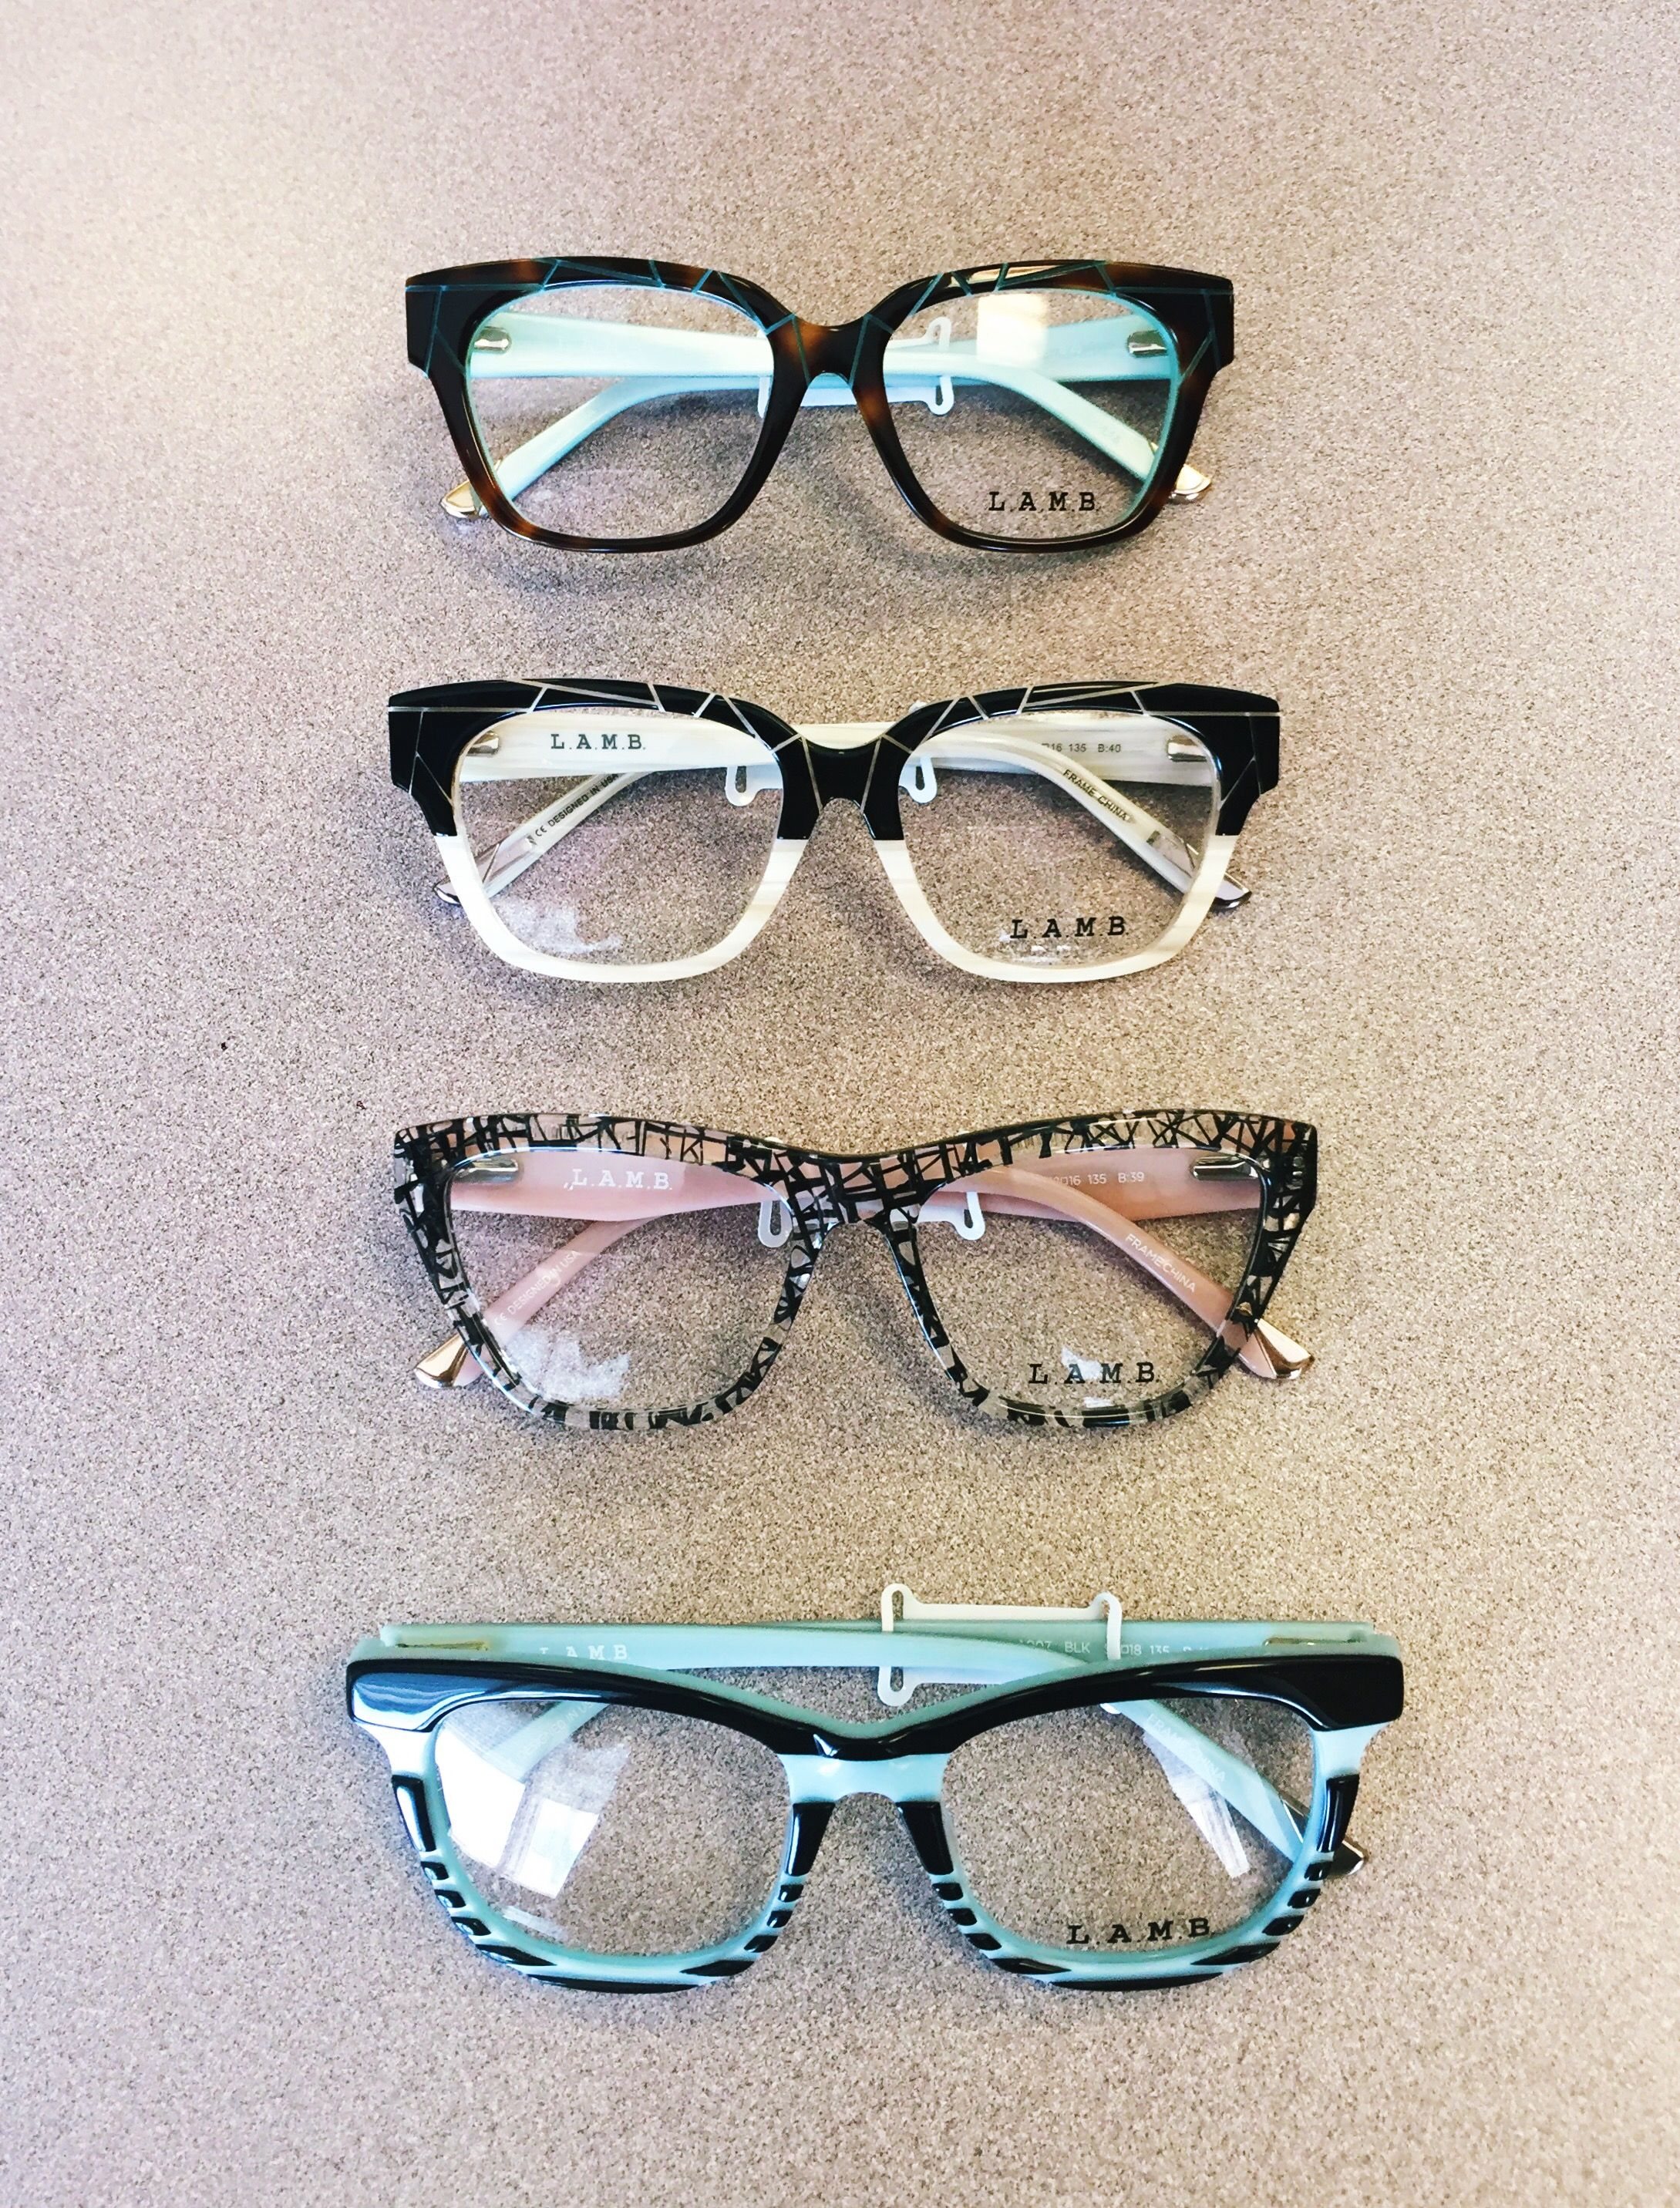 e1f6508852 Look at these new L.A.M.B. By Gwen Stefani frames we just received! Stop by  and purchase a pair today